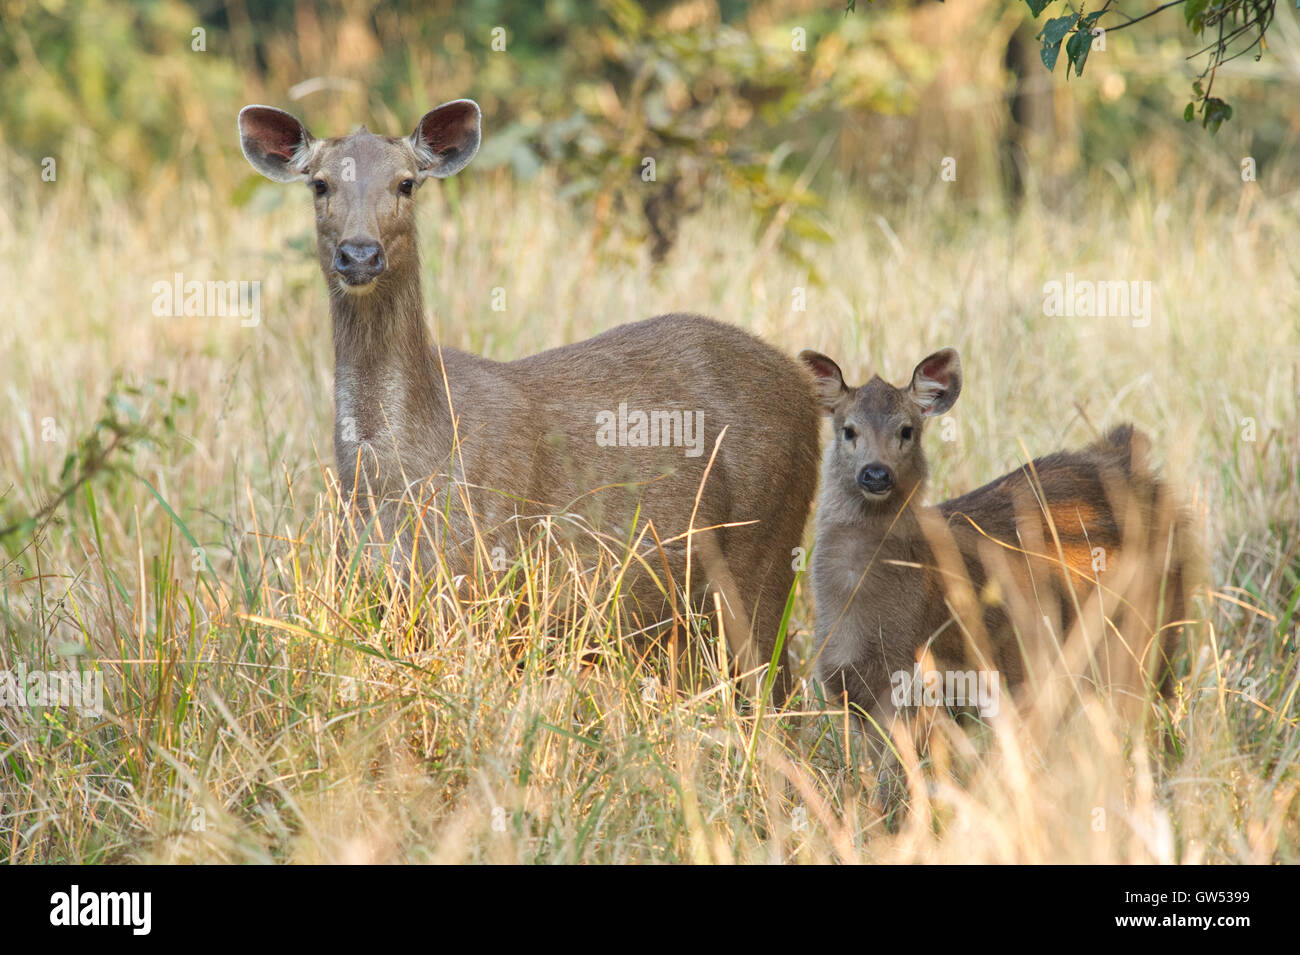 A female Sambar Deer (Rusa unicolor) with young calf in Rajaji National Park, Uttarakhand, India - Stock Image